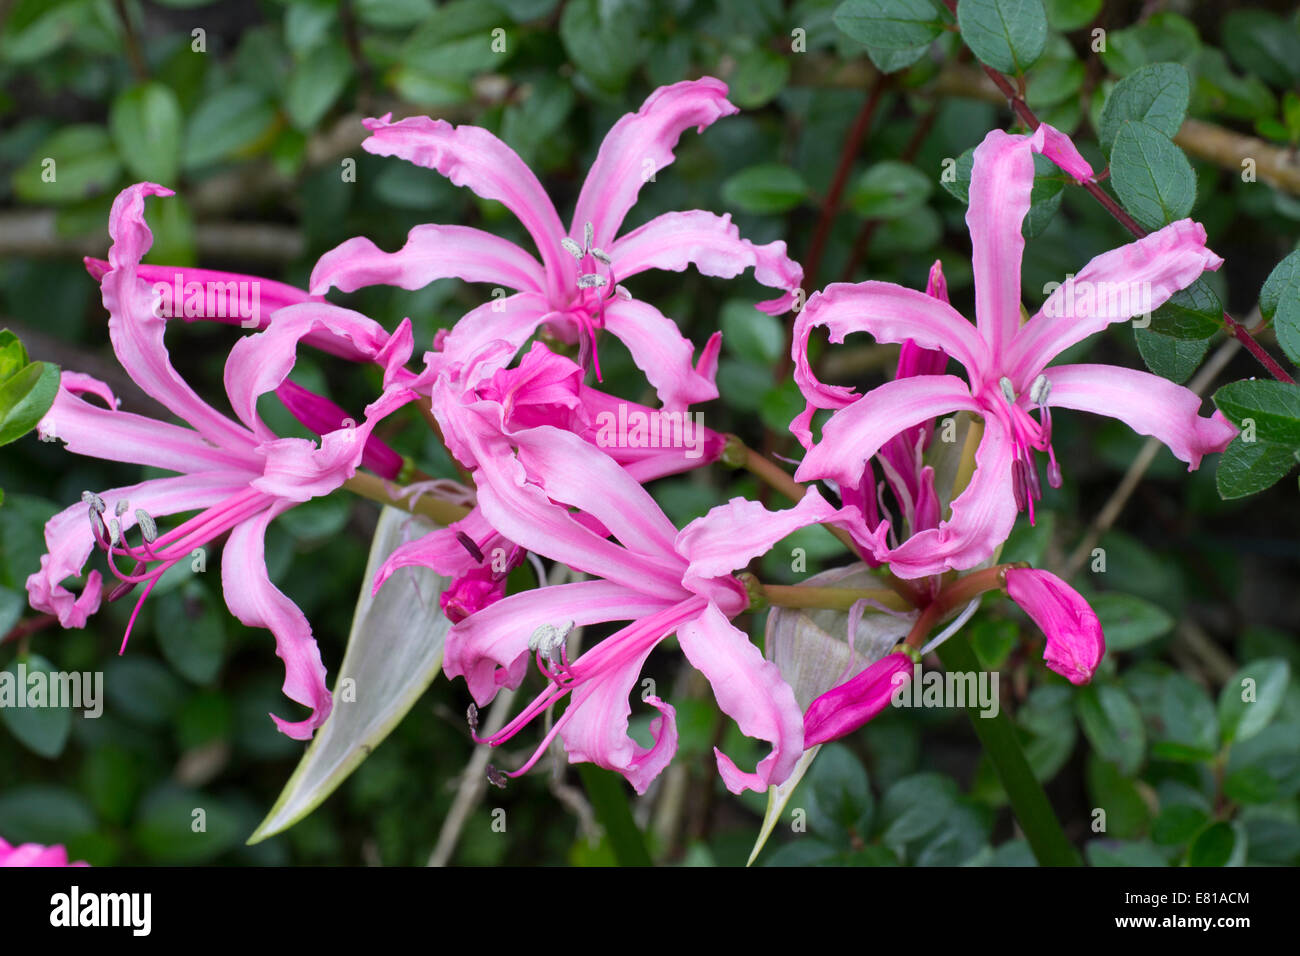 Autumn flowers of the half hardy south african bulb nerine flexuosa autumn flowers of the half hardy south african bulb nerine flexuosa mightylinksfo Gallery